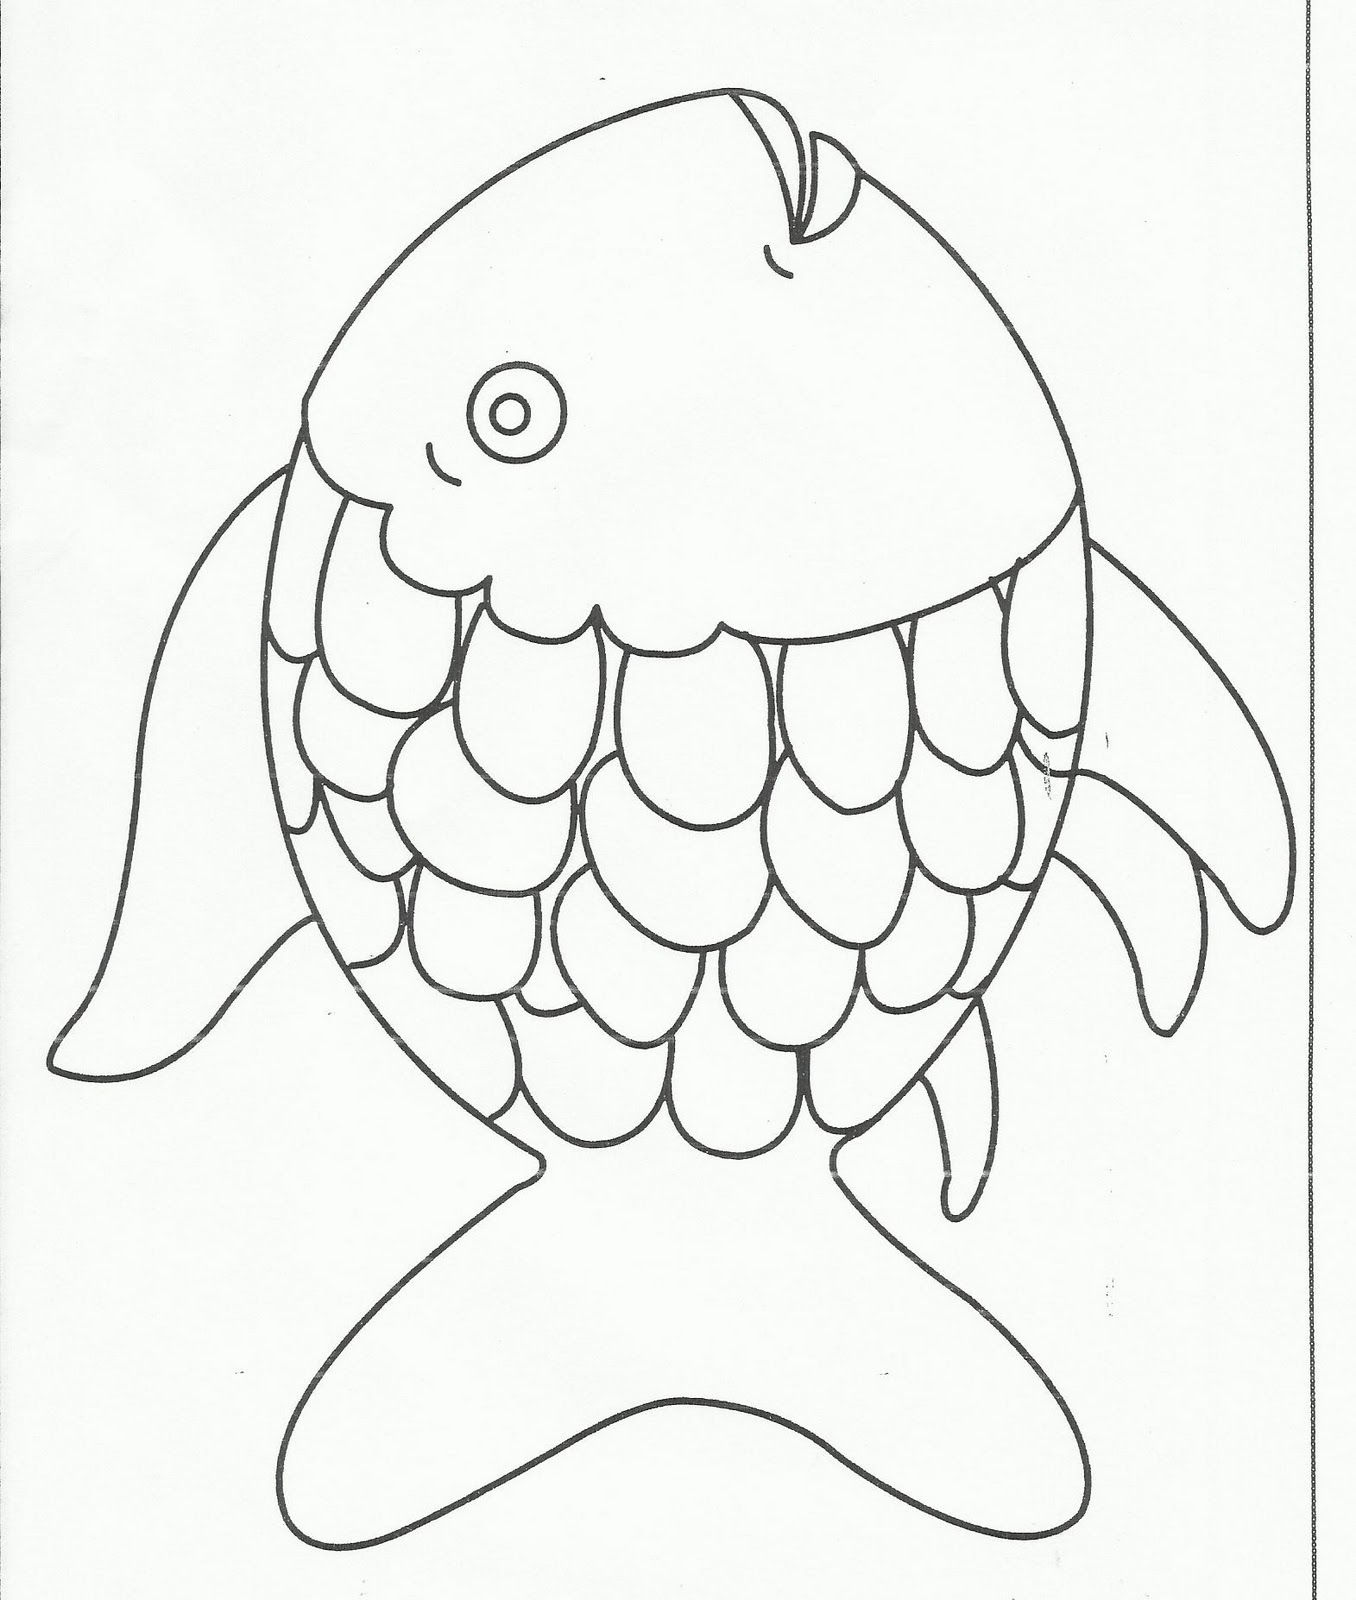 Rainbow Fish Outline Az Coloring Pages Outline Pictures For Coloring